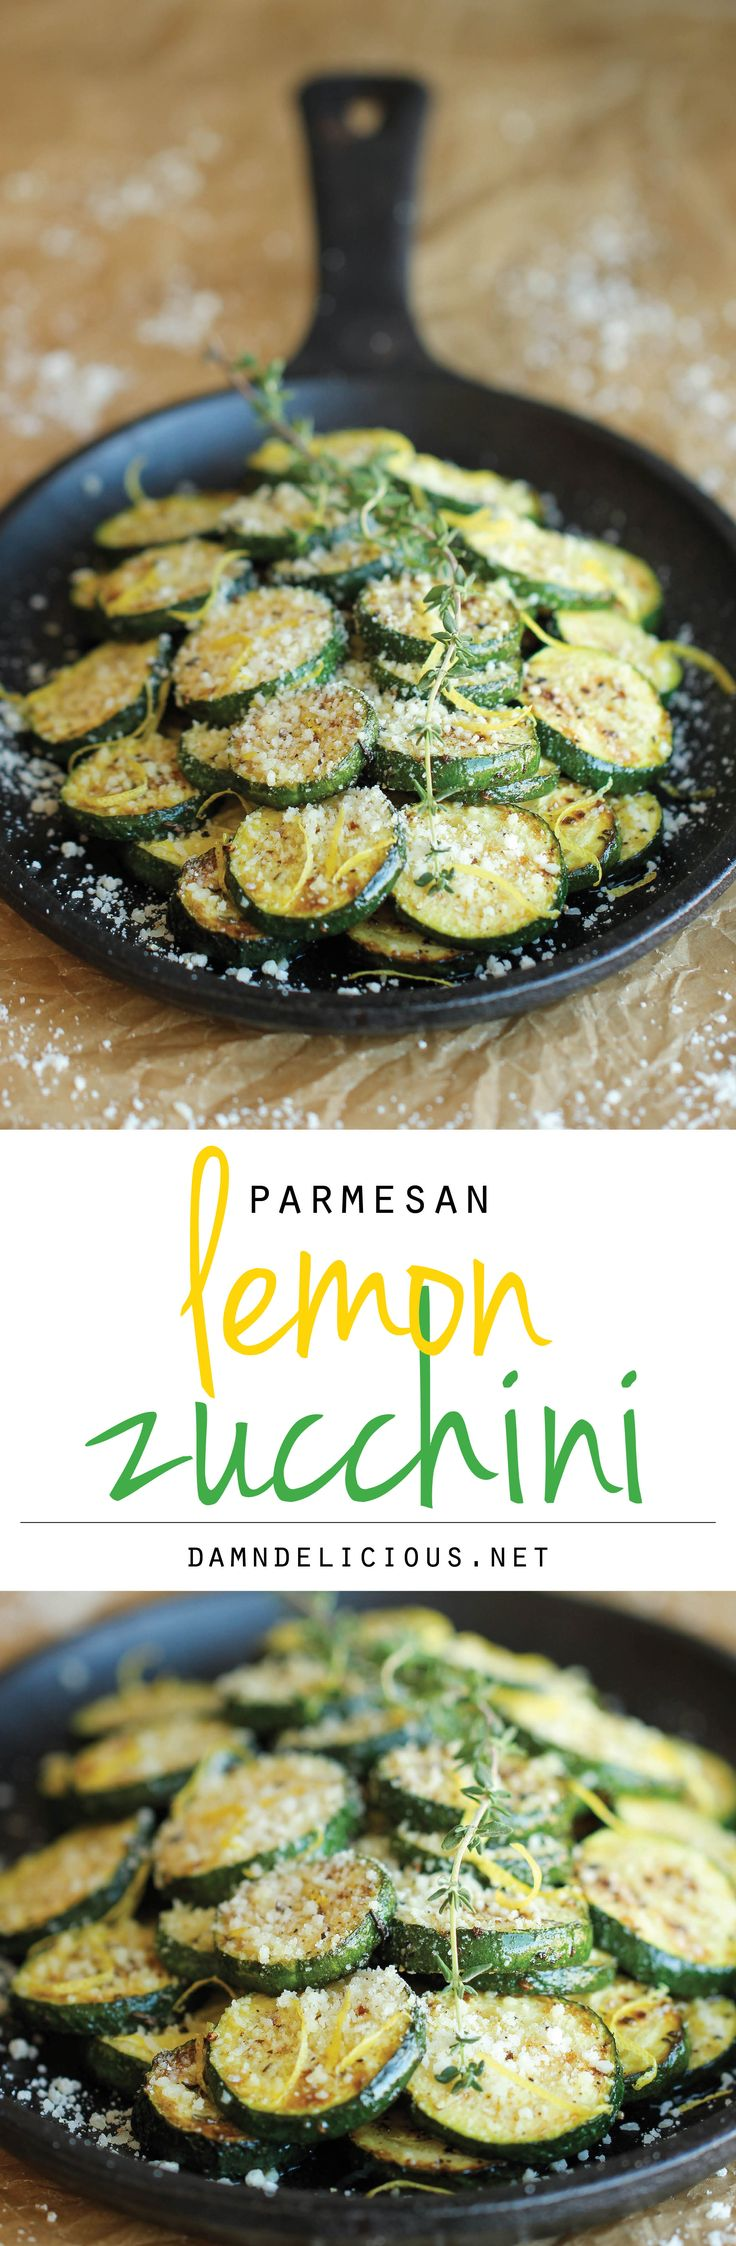 Parmesan Lemon Zucchini - The most amazing zucchini dish made in just 10 min…